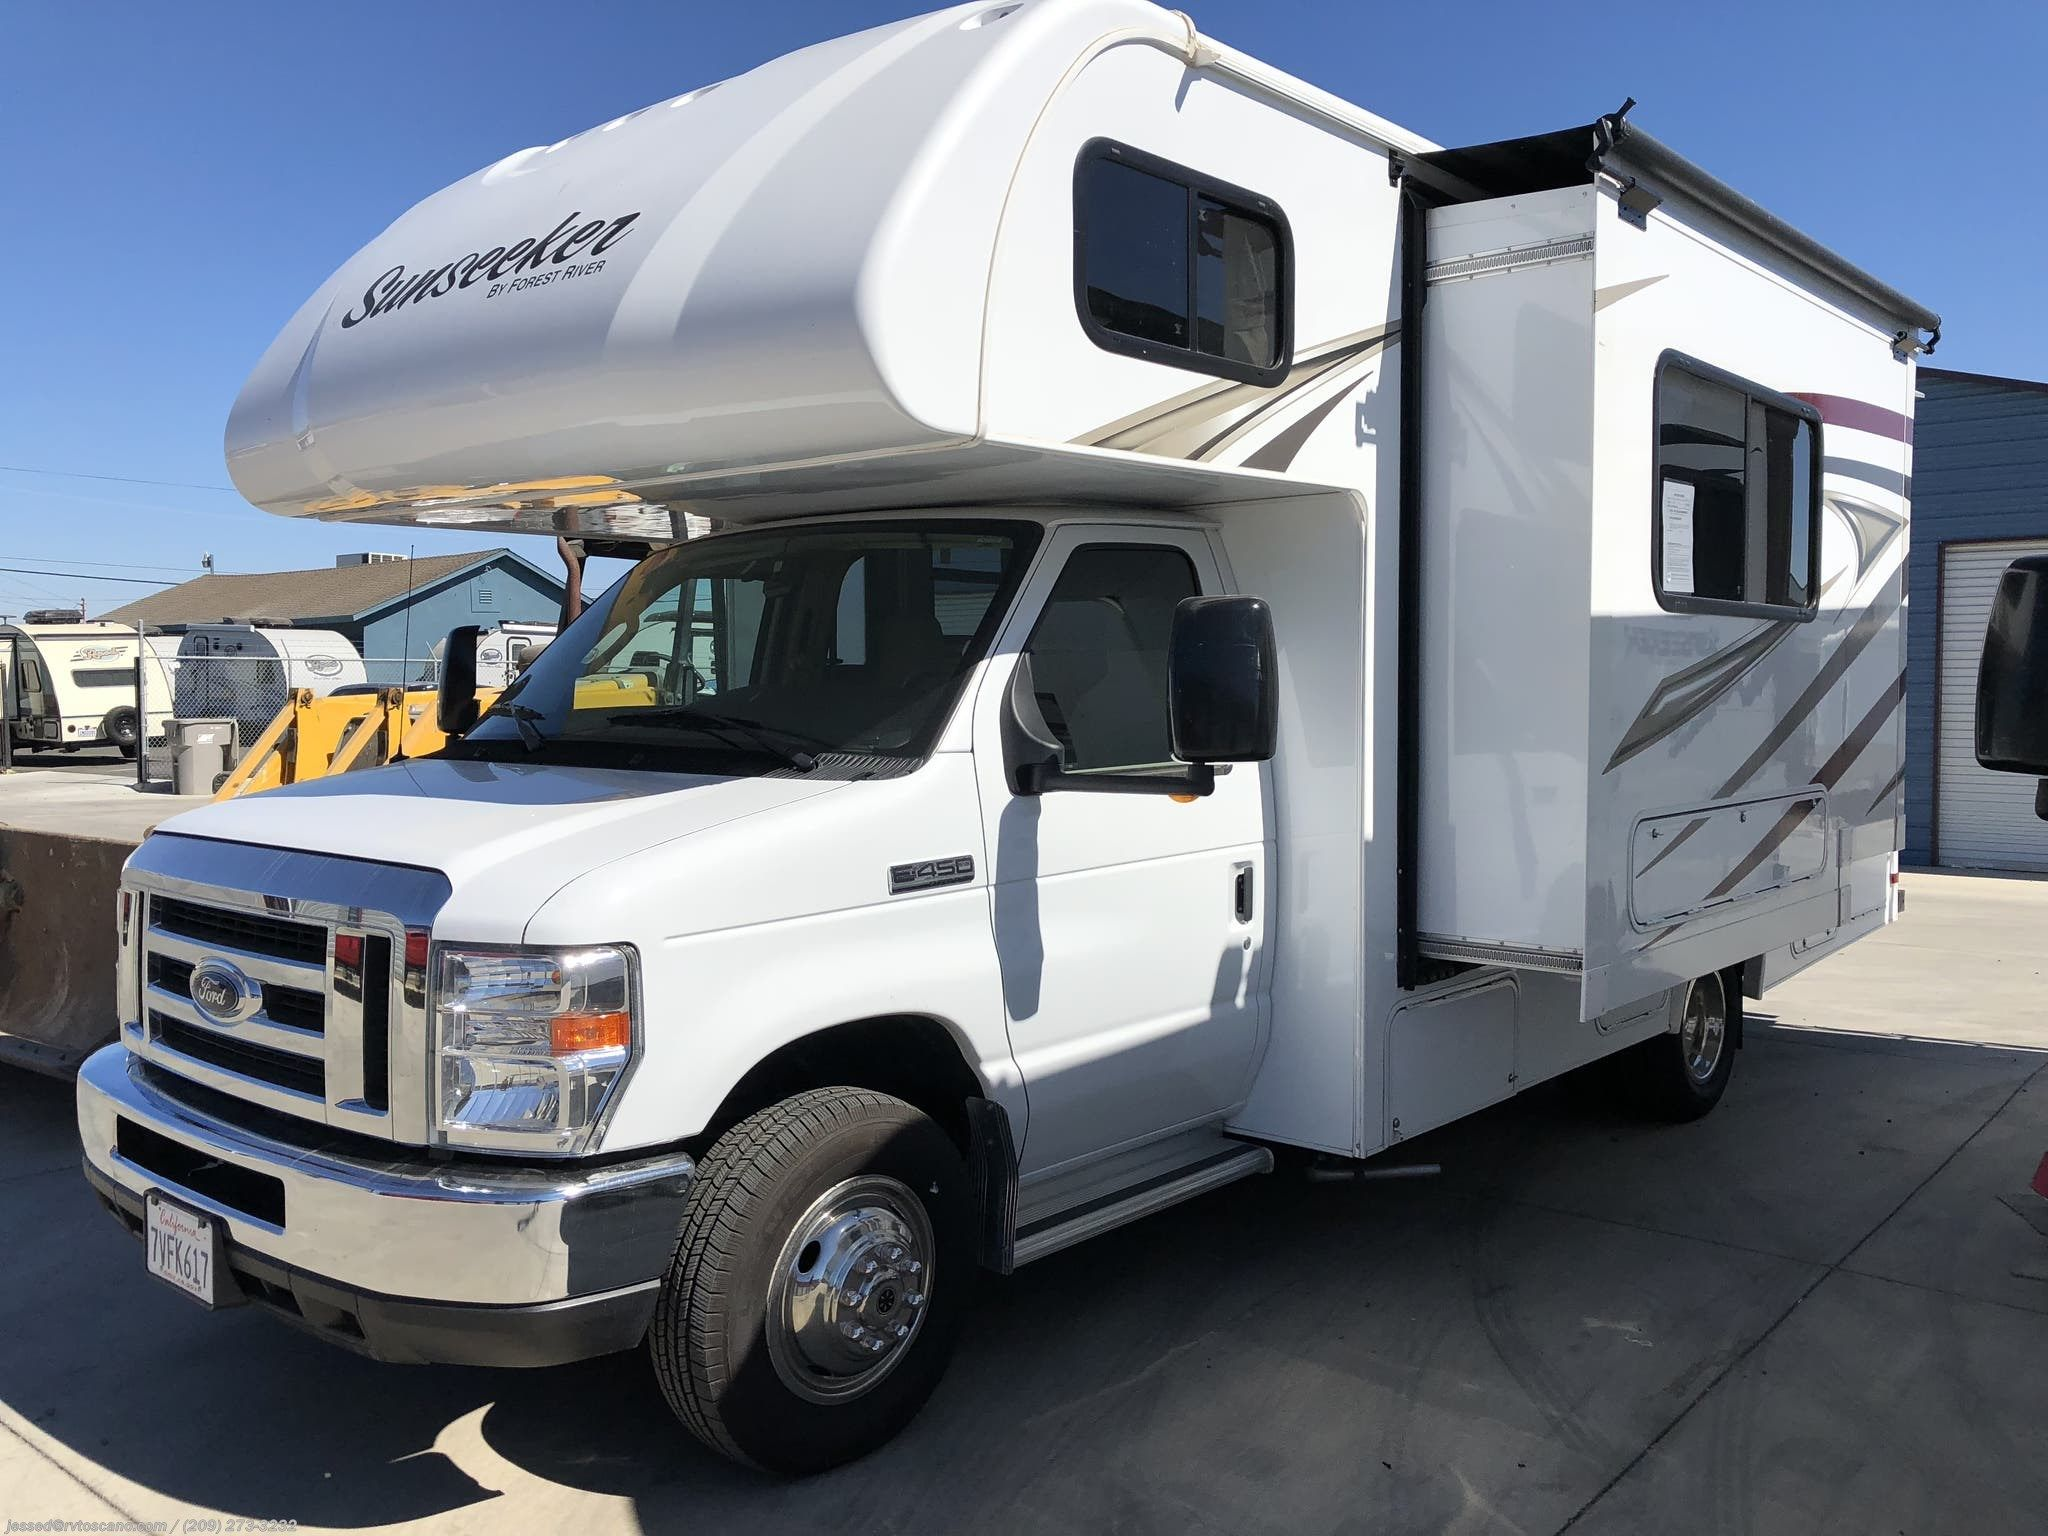 Sold Used 2017 Forest River Sunseeker 2290 Class C Motorhome Low